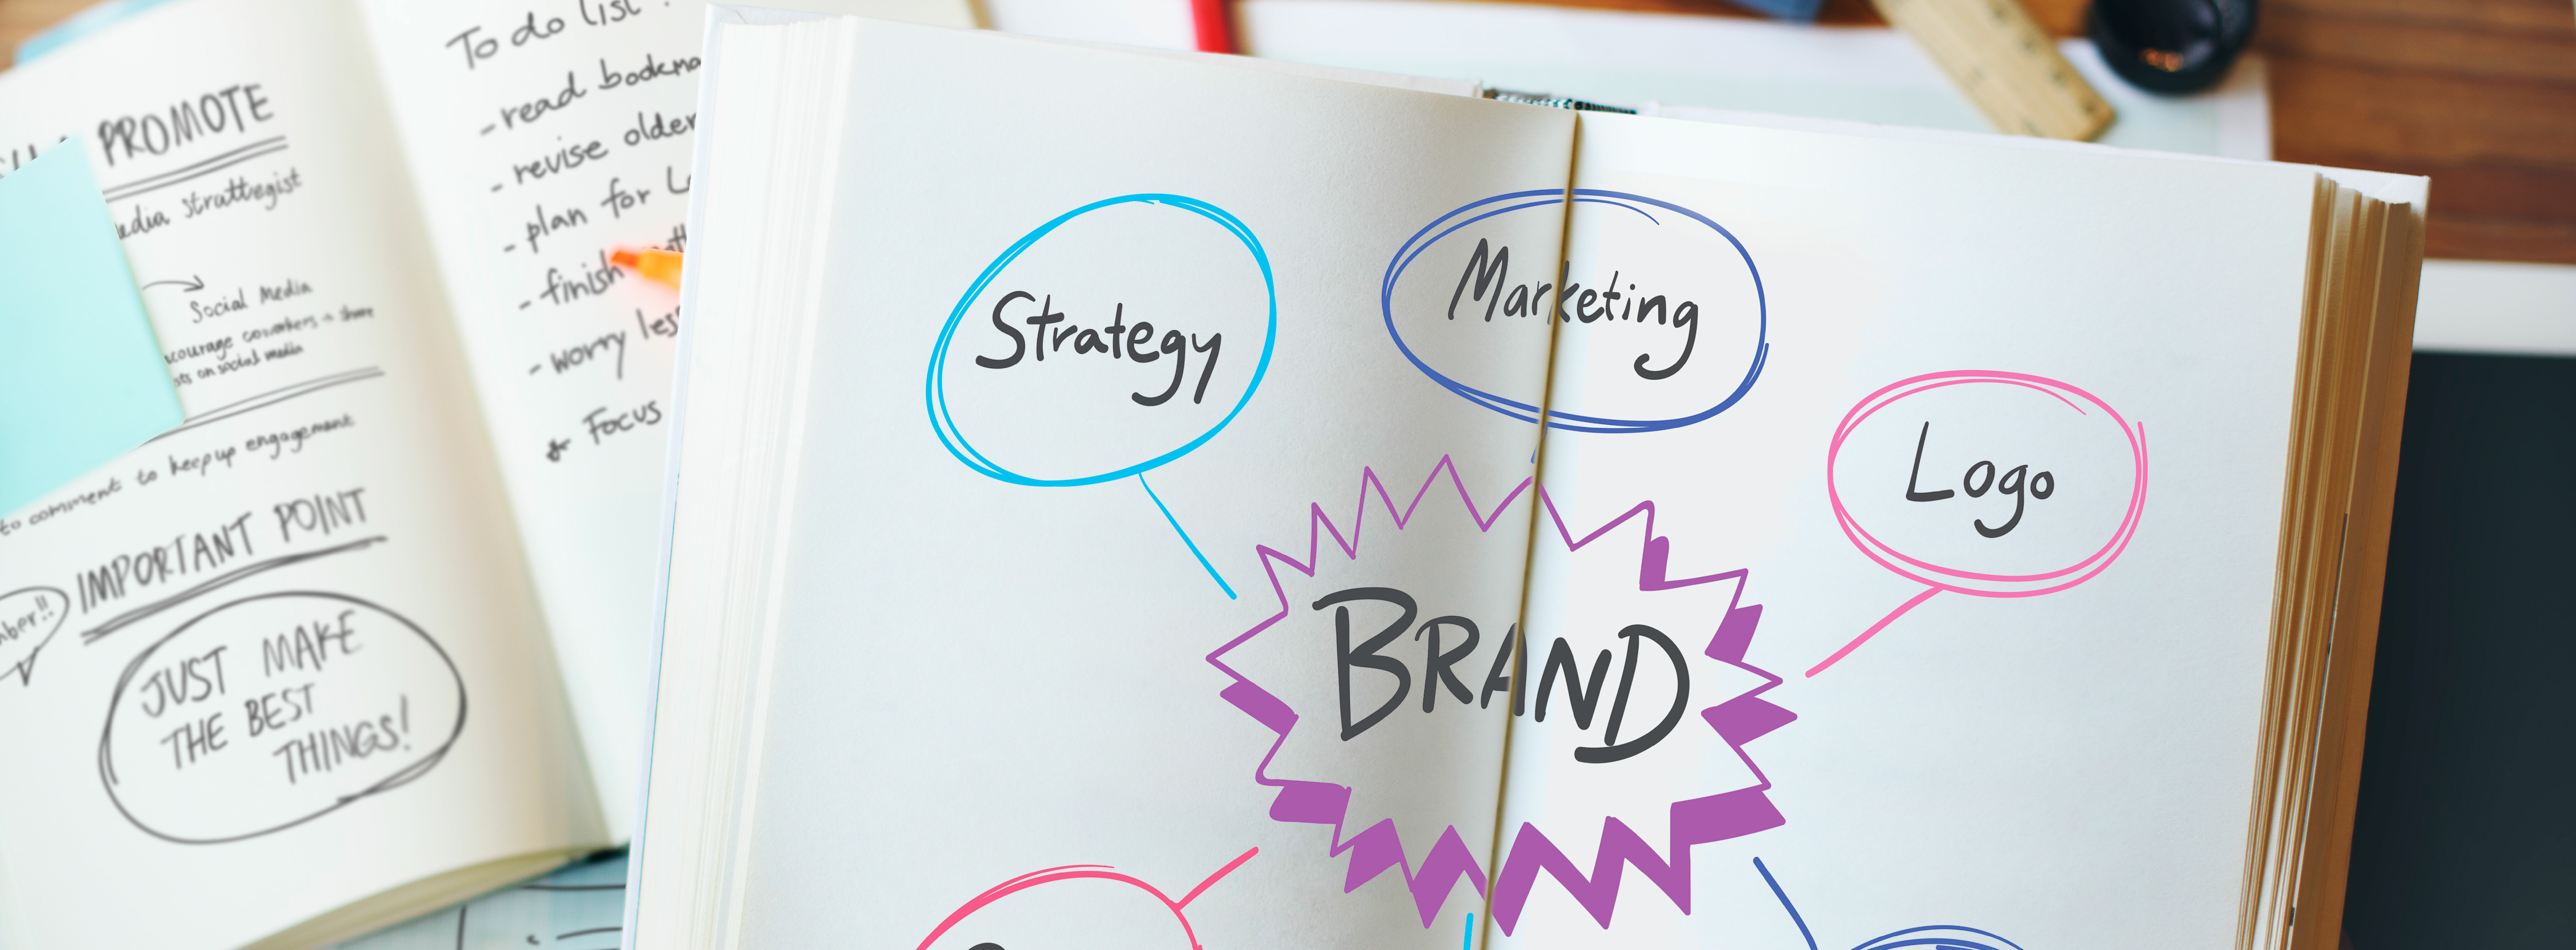 Why It's Important to Have Strong Brand Values